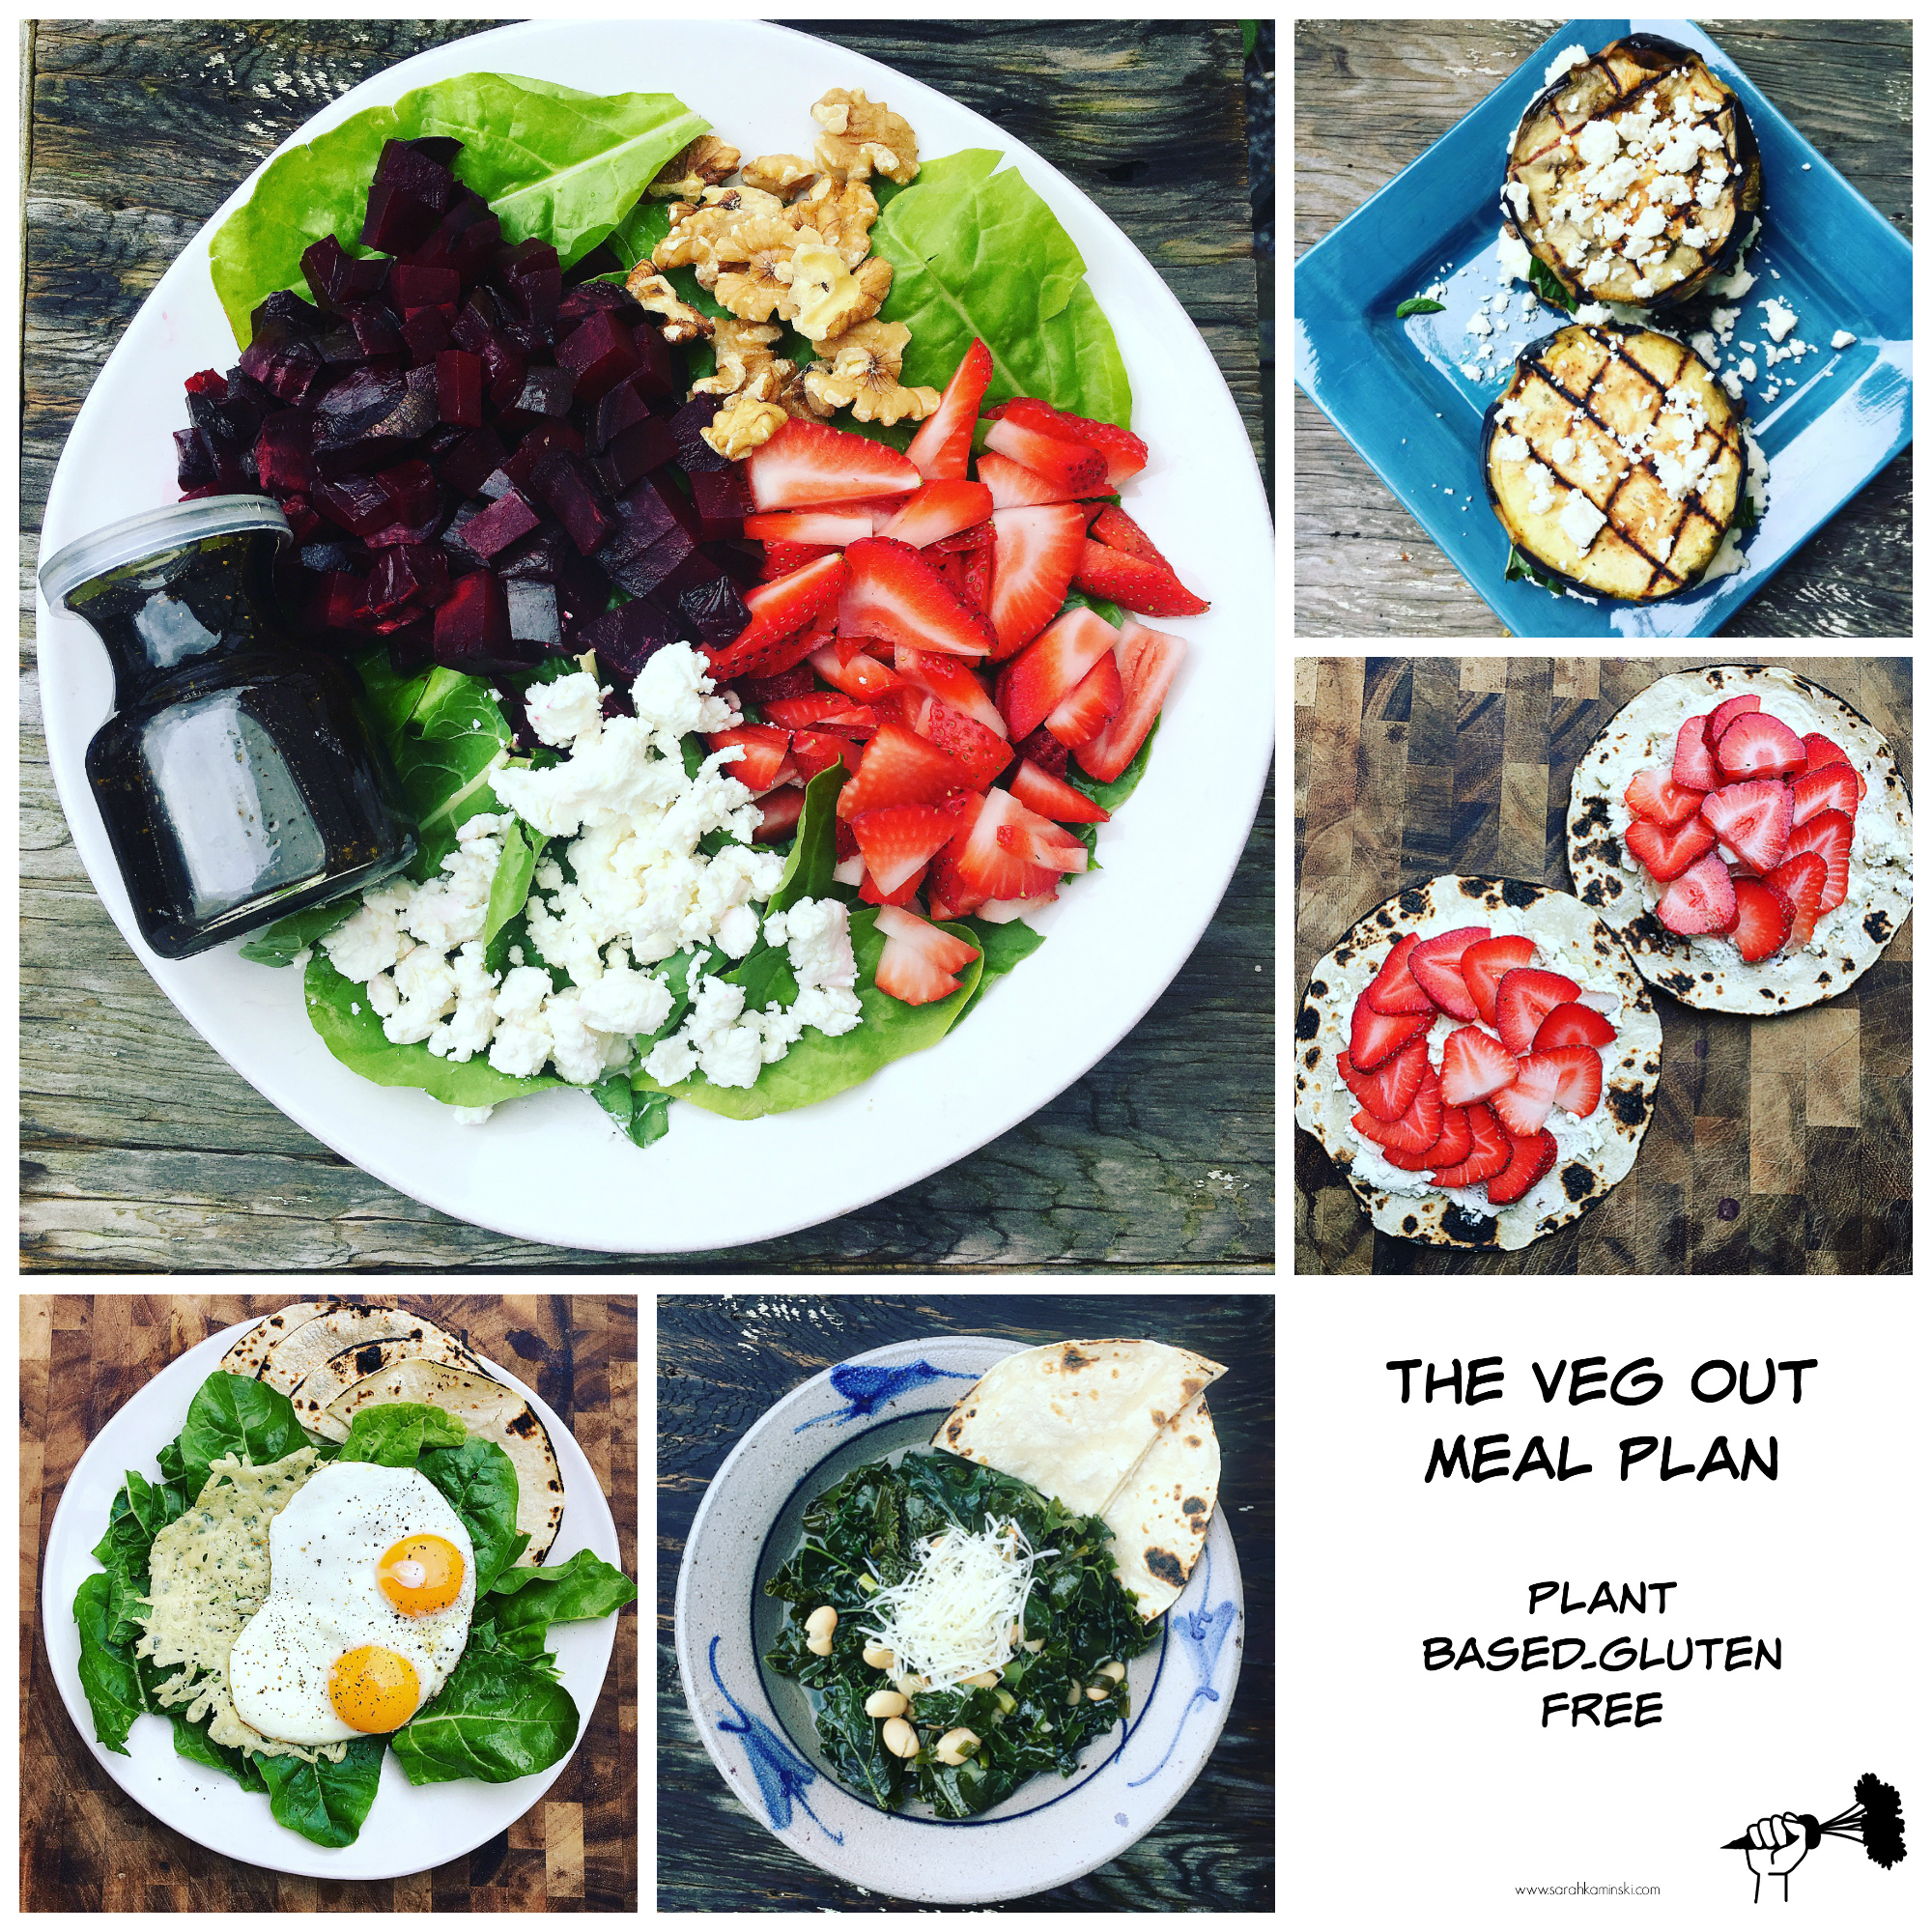 Plant Based, Gluten Free Recipes